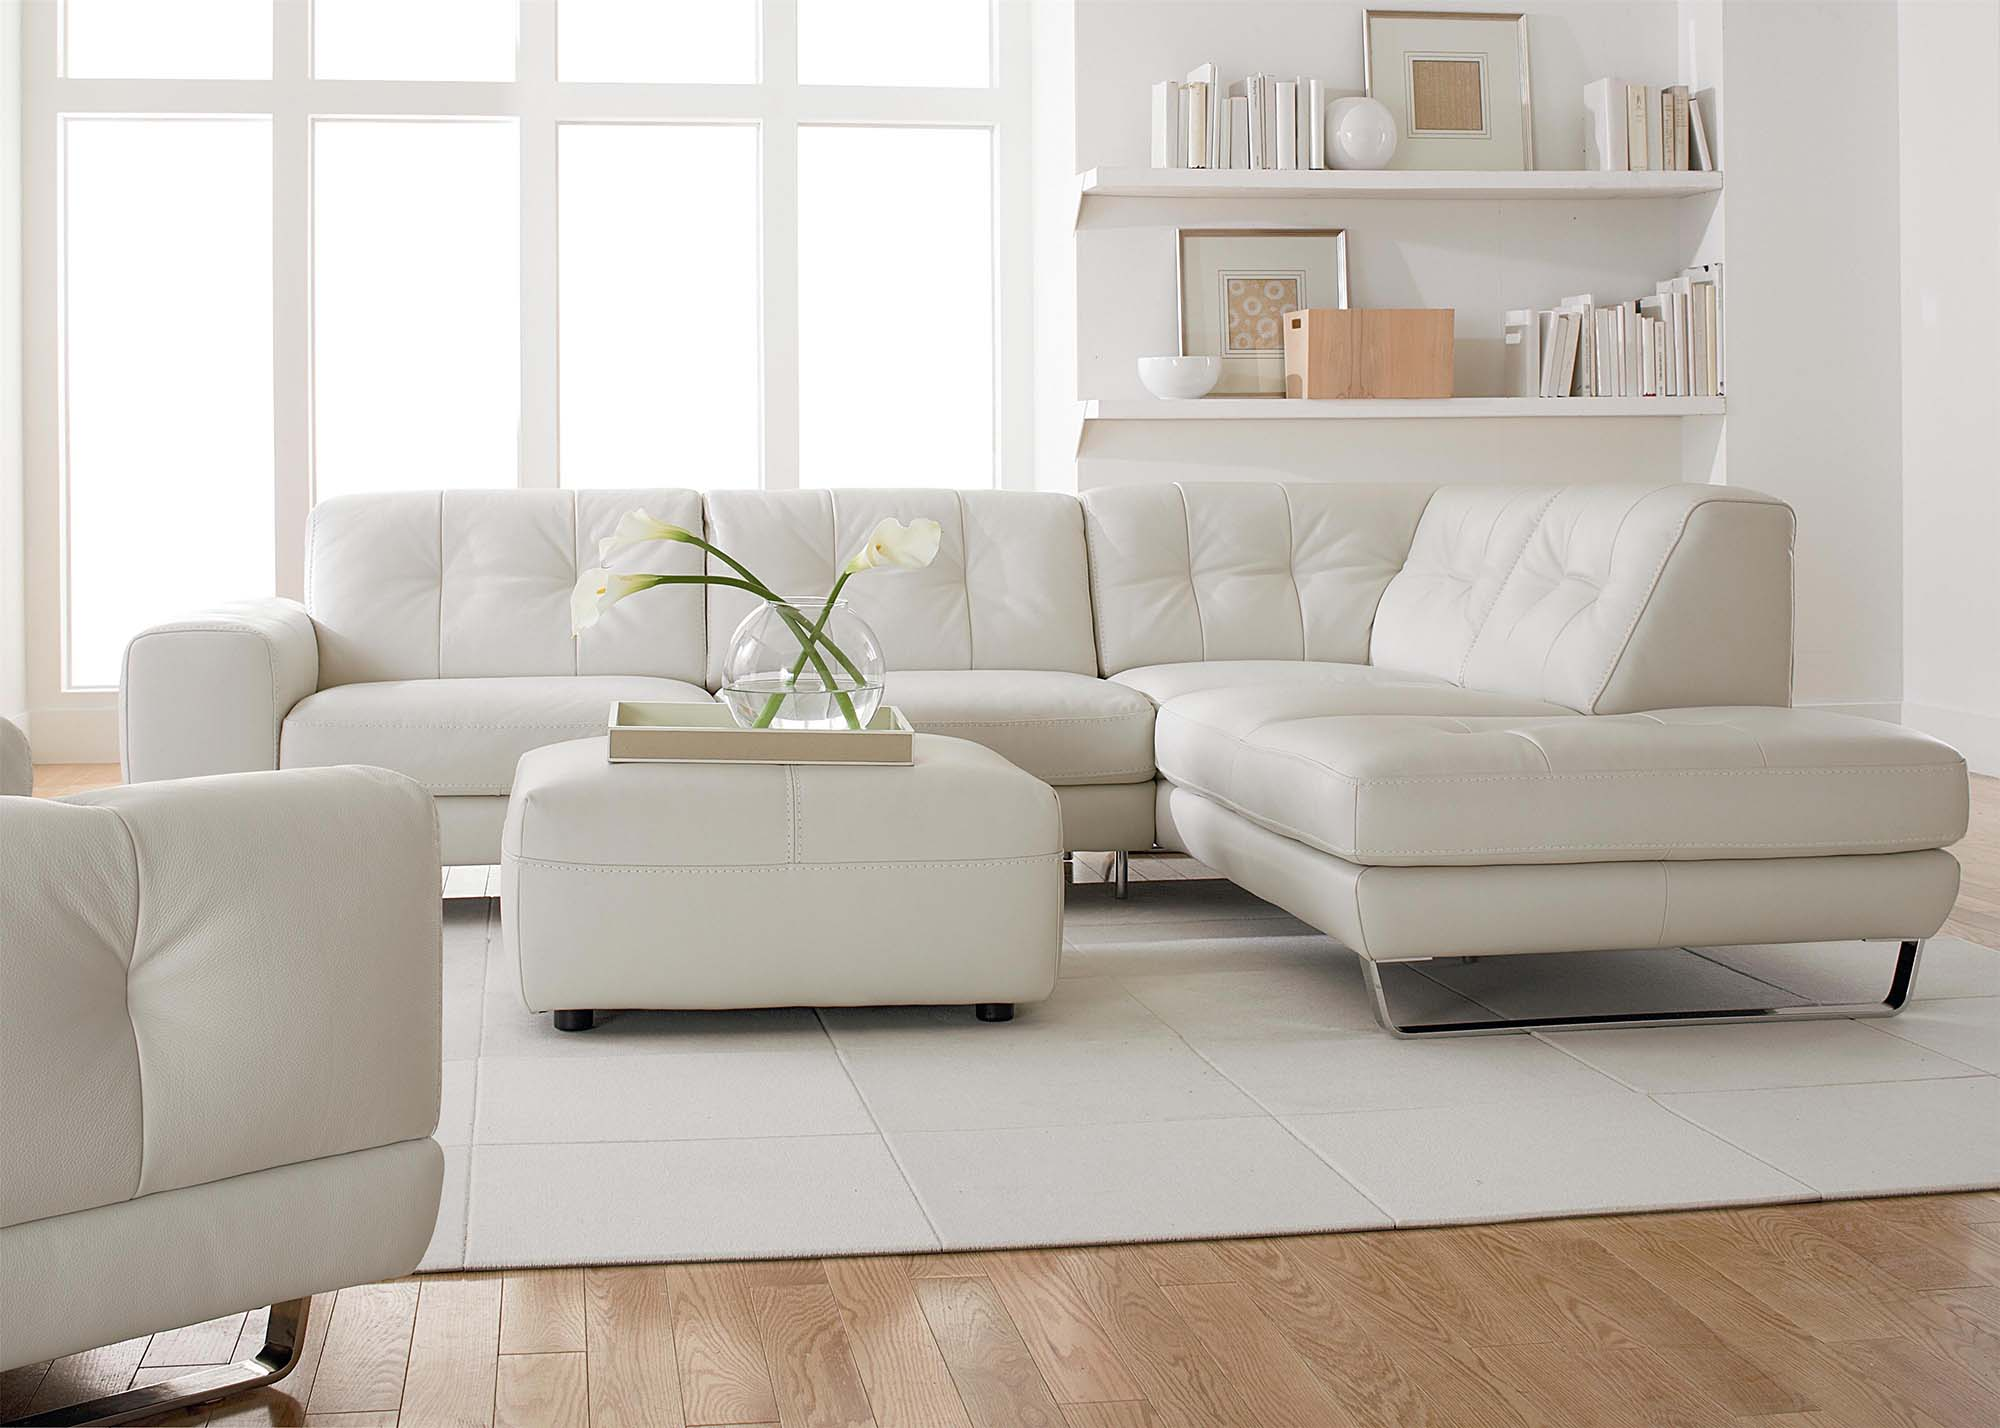 white room ideas all white living room white leather sofas Gambrick Luxury home builder NJ